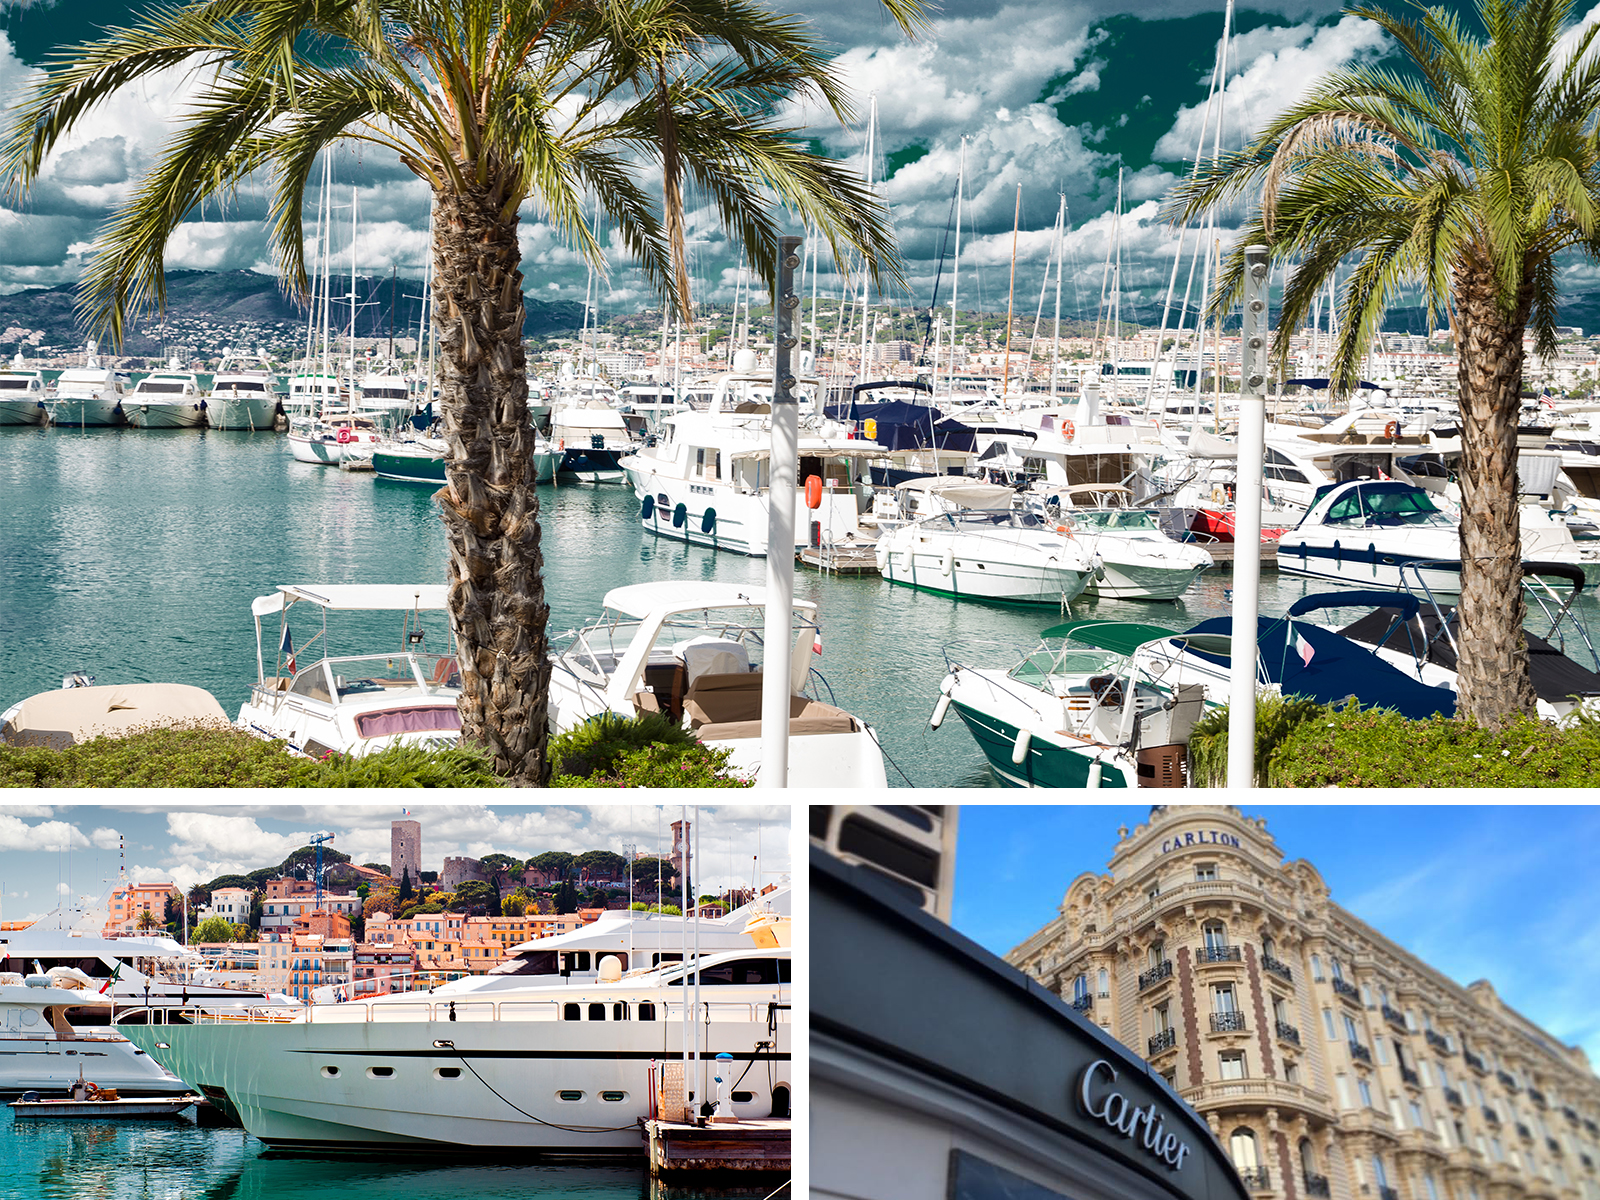 Day2_-_Cannes.jpg?1556212345